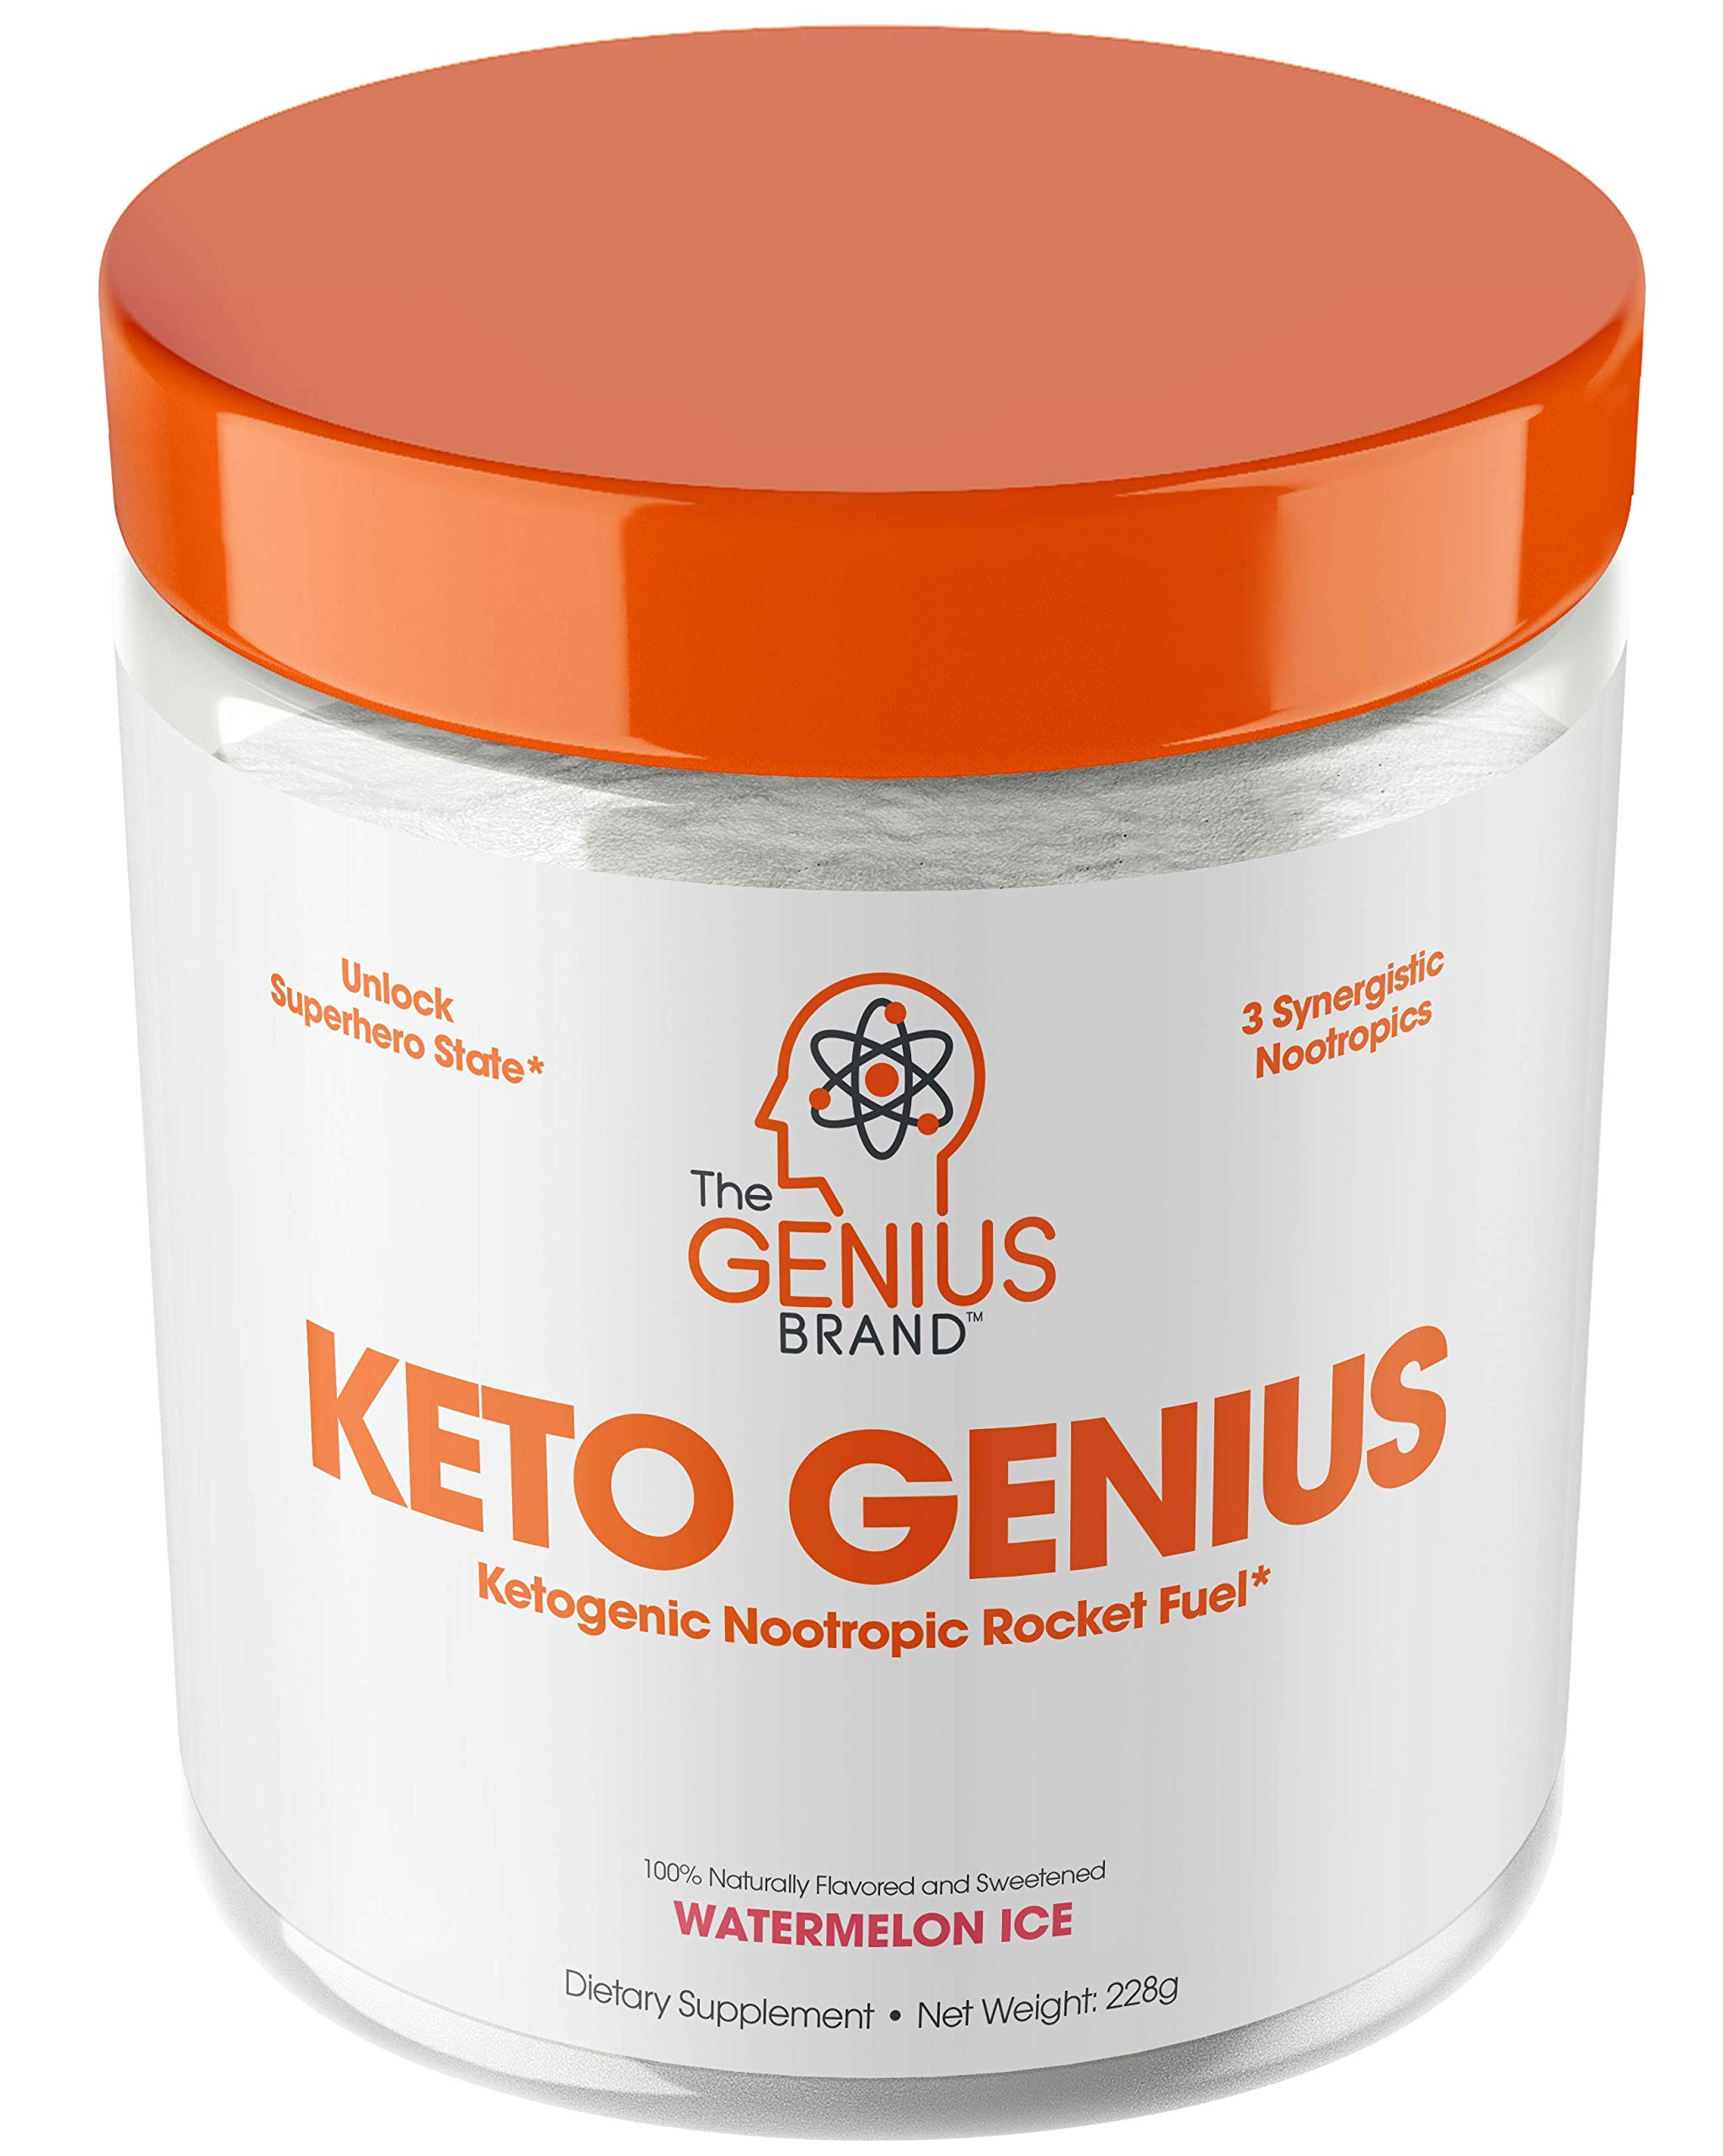 Keto Genius (BHB Exogenous Ketones + Nootropics) - Ketogenic Energy & Focus Supplement - Perfect Nootropic Brain Fuel to Spark Ketosis & Boost Clarity - Pure Ketone Drink Powder w/Alpha GPC -15sv by The Genius Brand